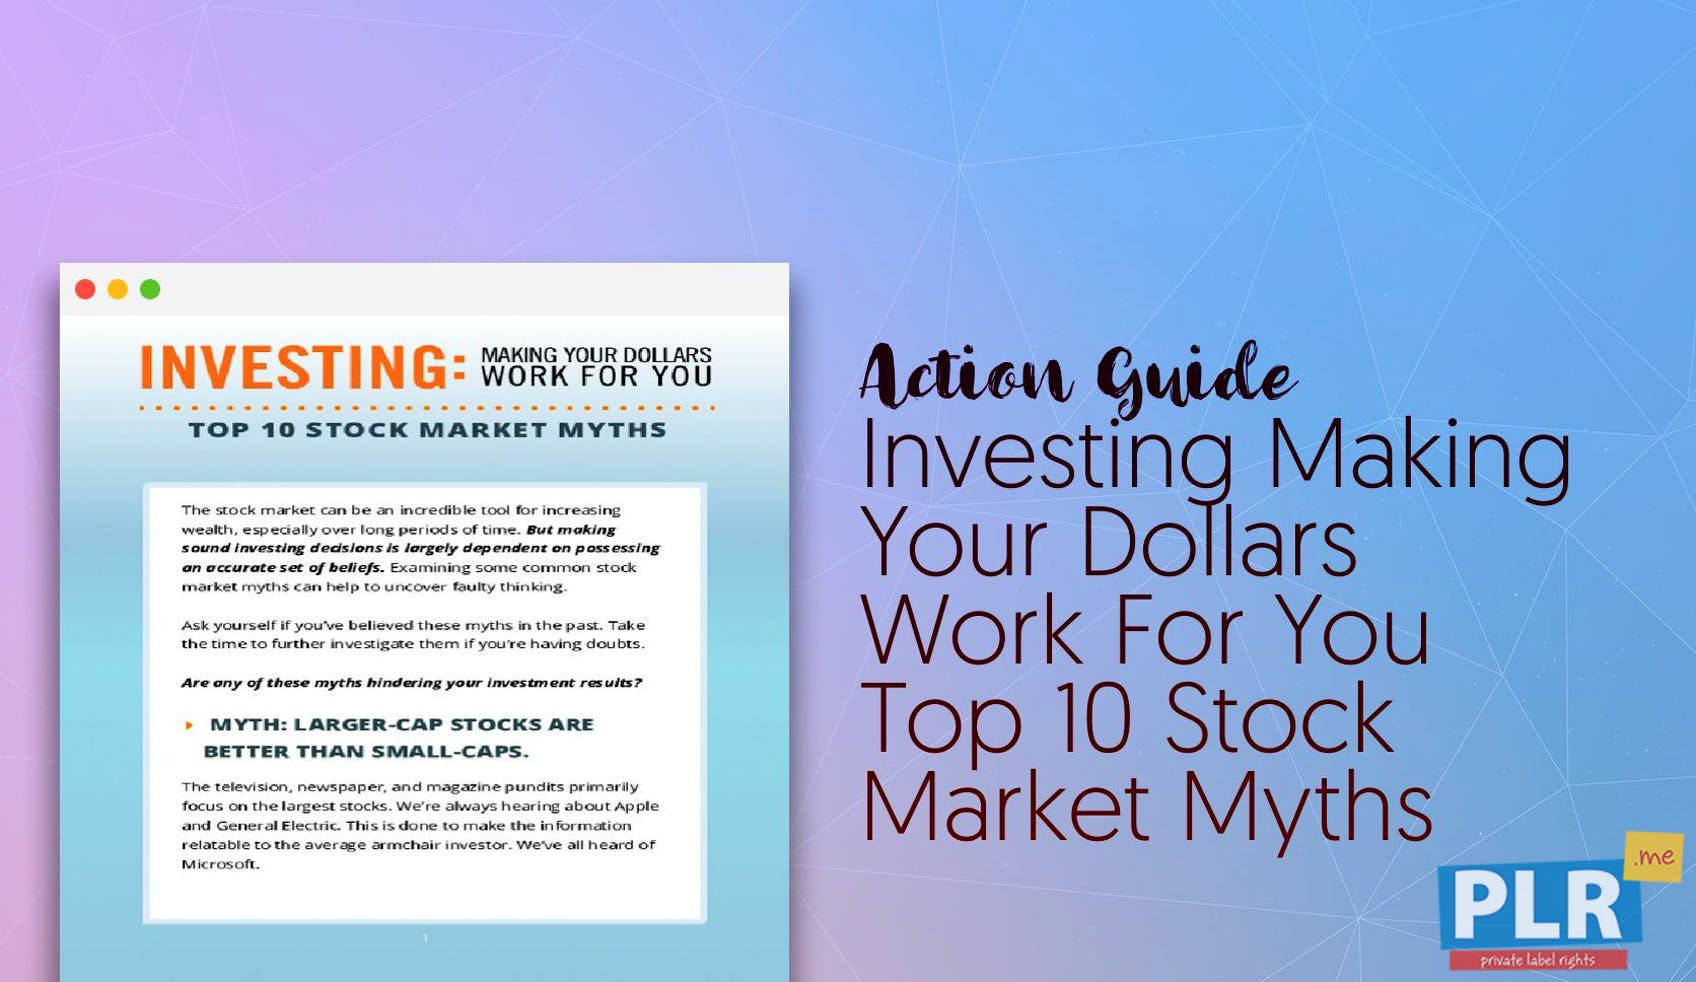 Ten Common Learning Myths That Might Be >> Investing Making Your Dollars Work For You Top 10 Stock Market Myths